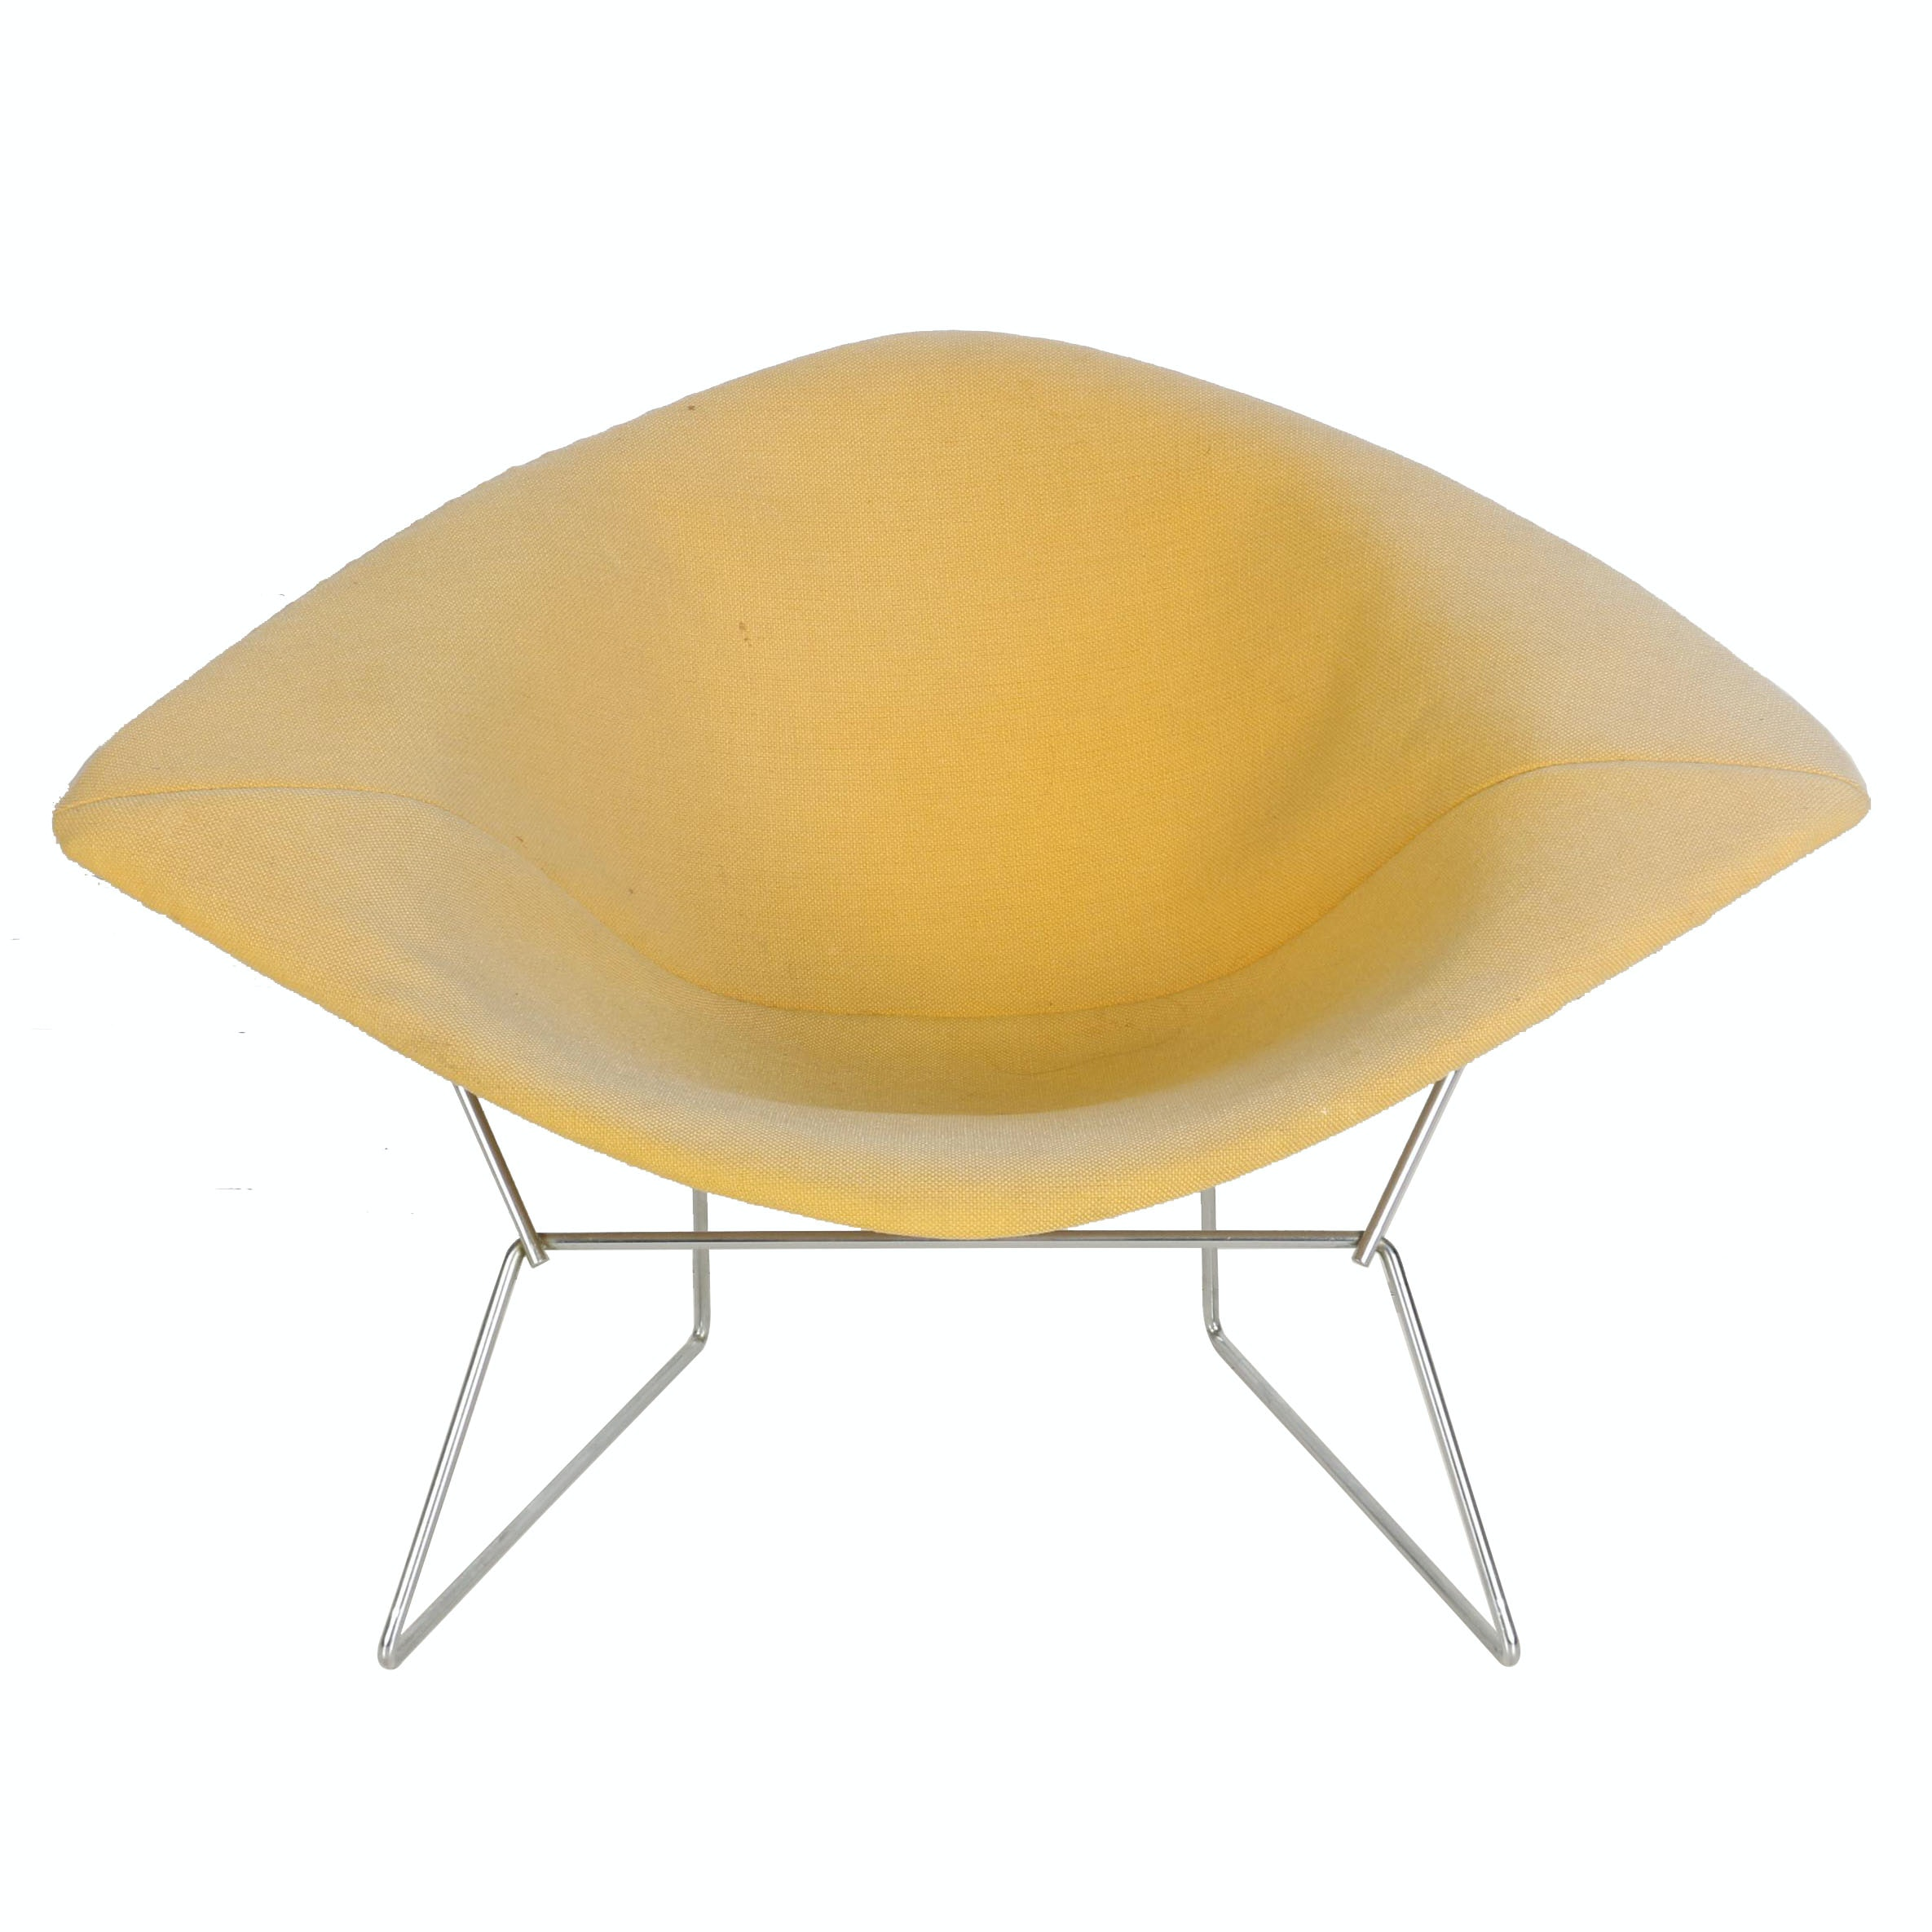 "Mid Century Modern Yellow ""Diamond"" Lounge Chair by Harry Bertoia for Knoll"